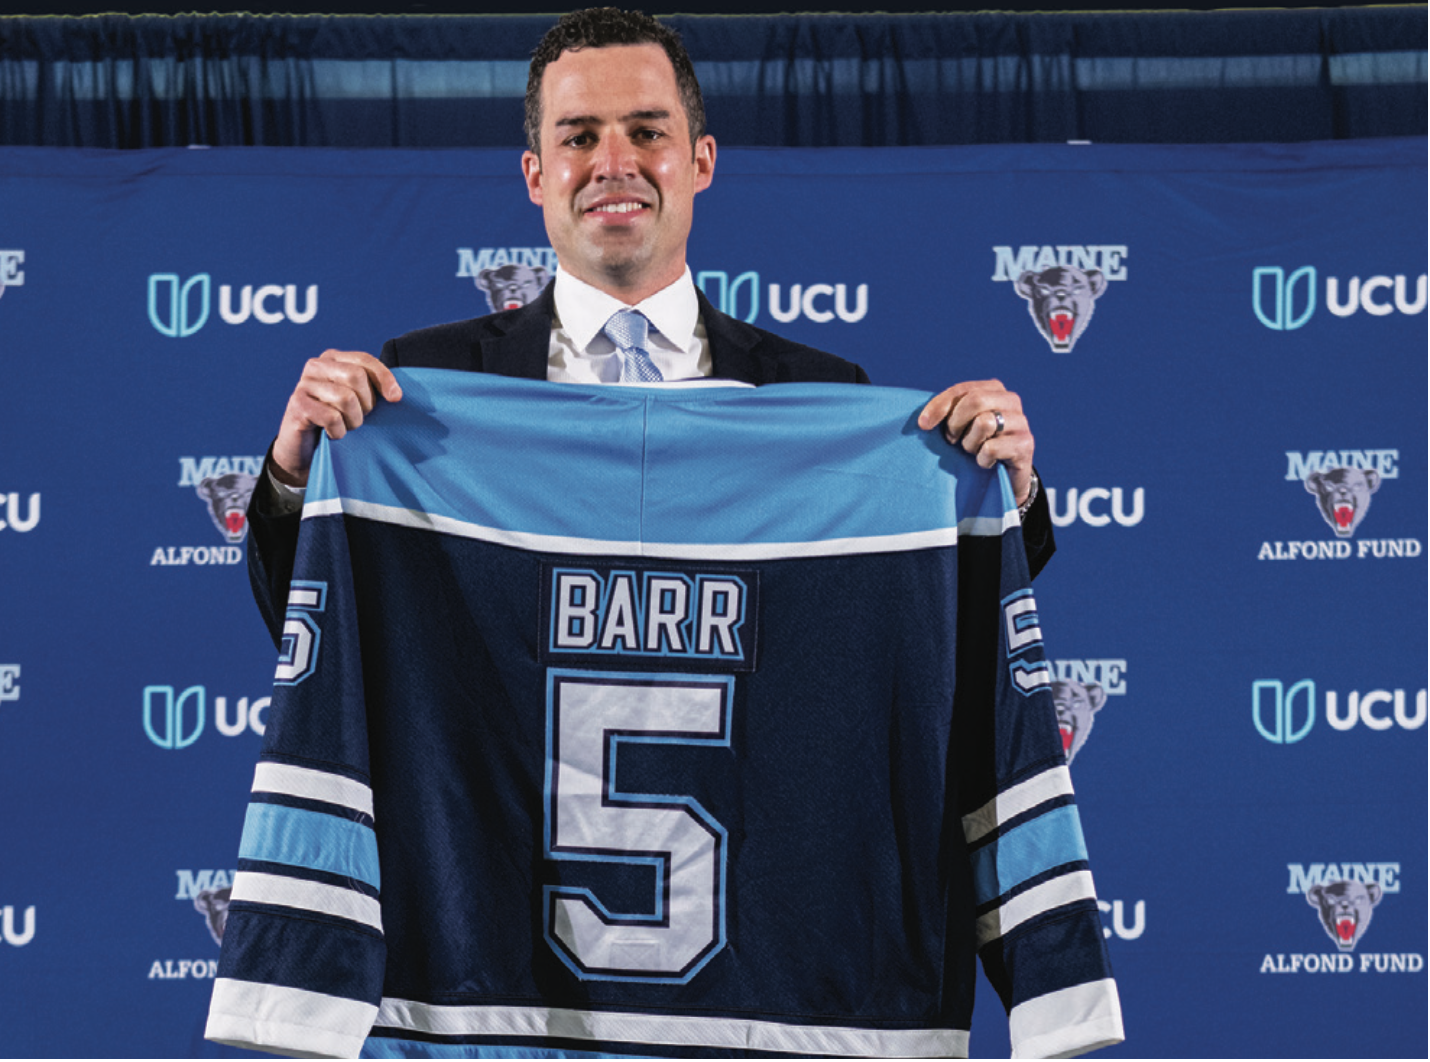 """Ben Barr holding up a #5 jersey that reads """"BARR"""" over the number"""